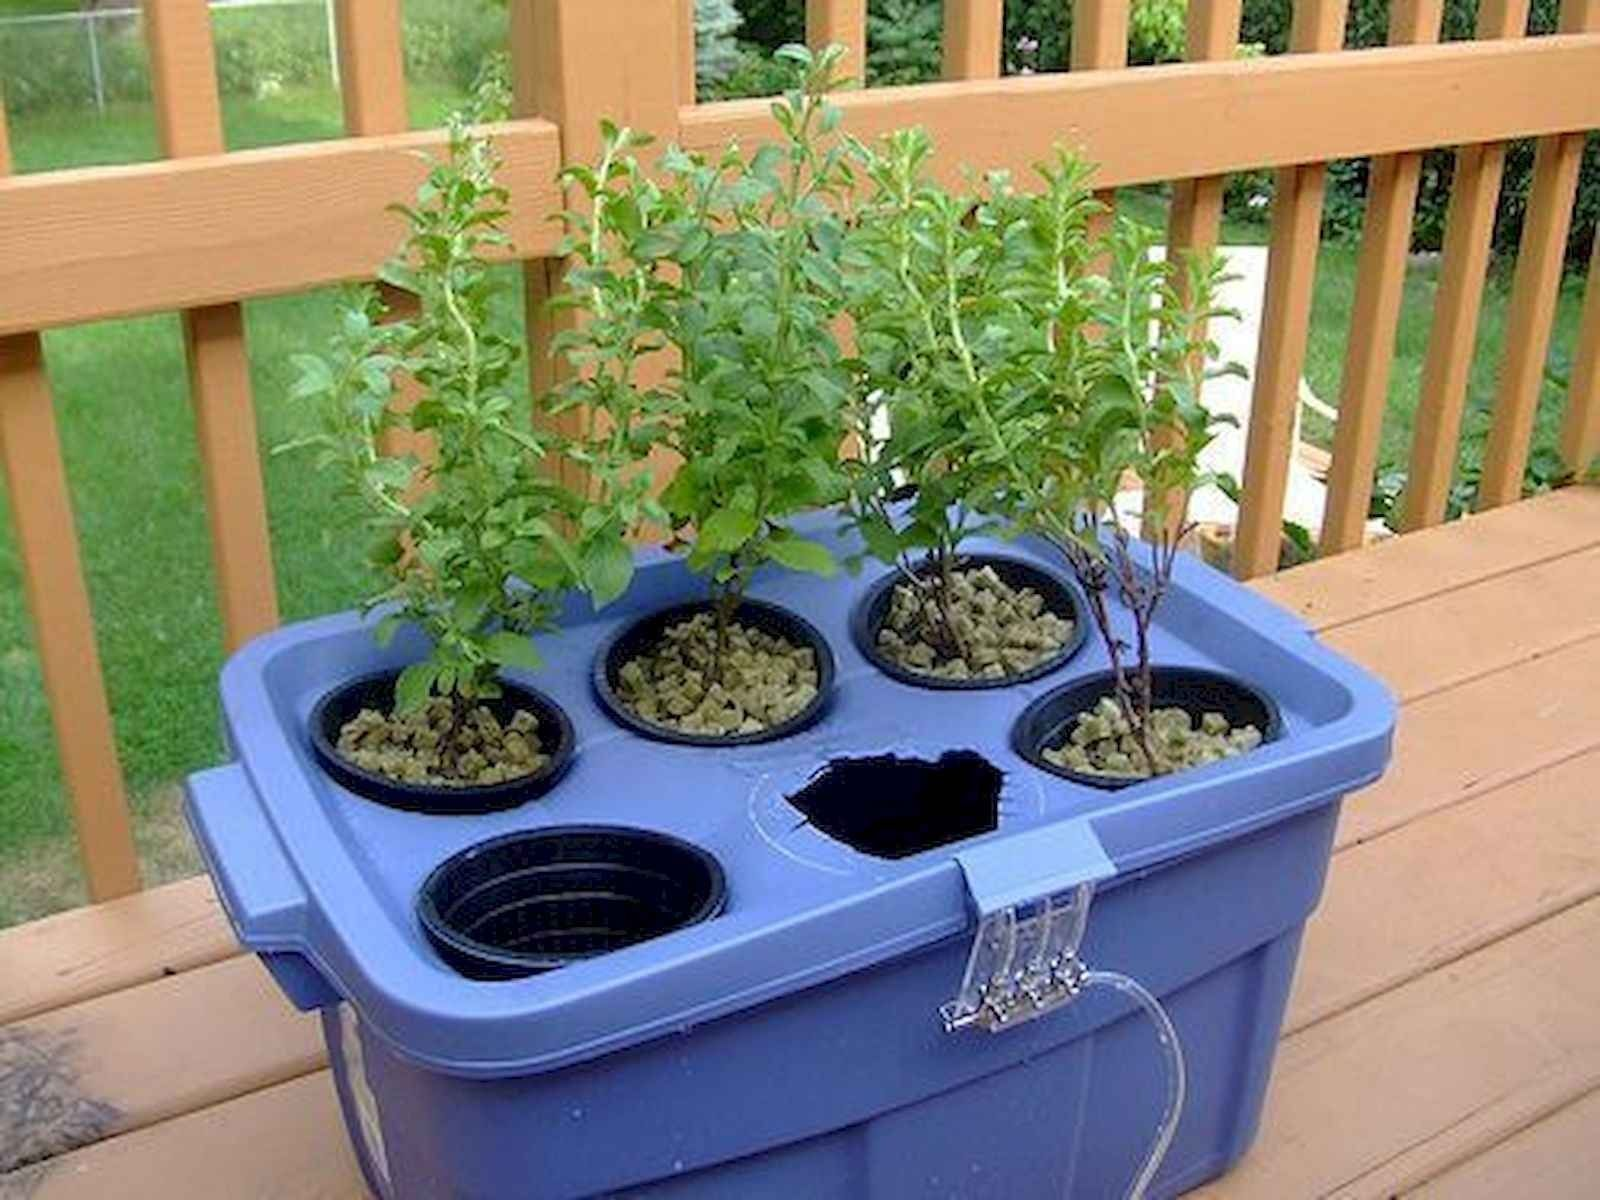 40 Easy To Try Hydroponic Gardening For Beginners Design Ideas And Remodel garden #40 #easy #to #try #hydroponic #gardening #for #beginners #design #ideas #and #remodel